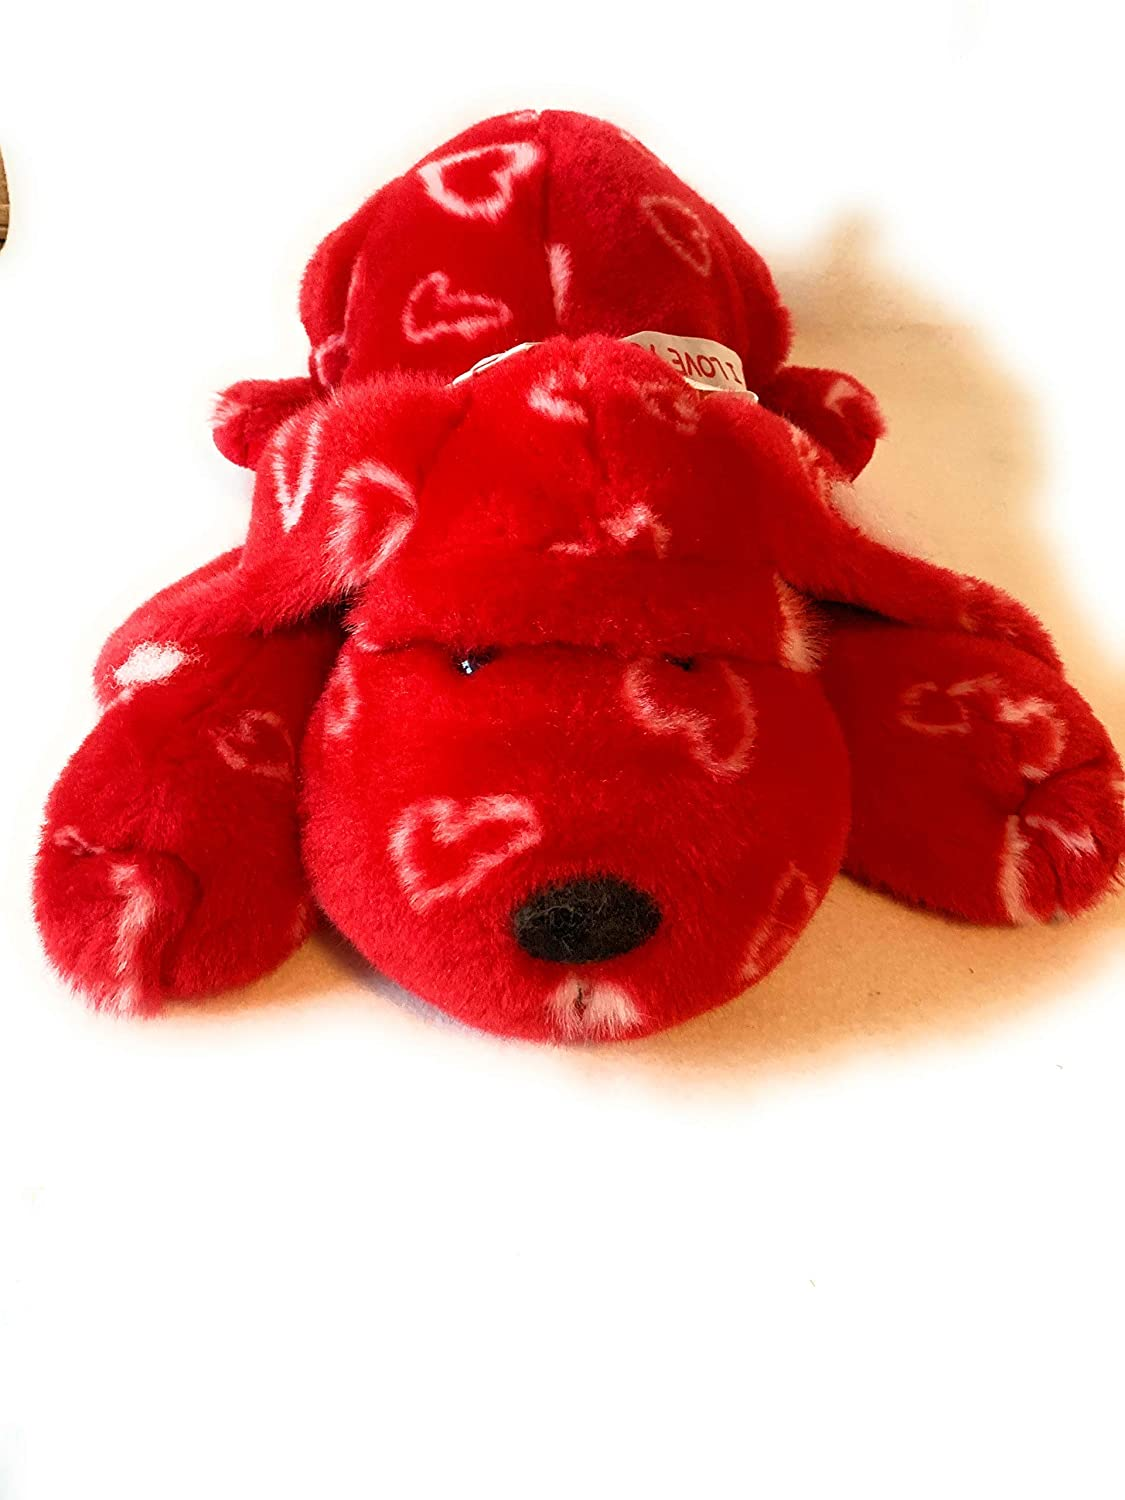 washable weighted buddy Large weighted stuffed animal weighted red dog with hearts and 5 lbs